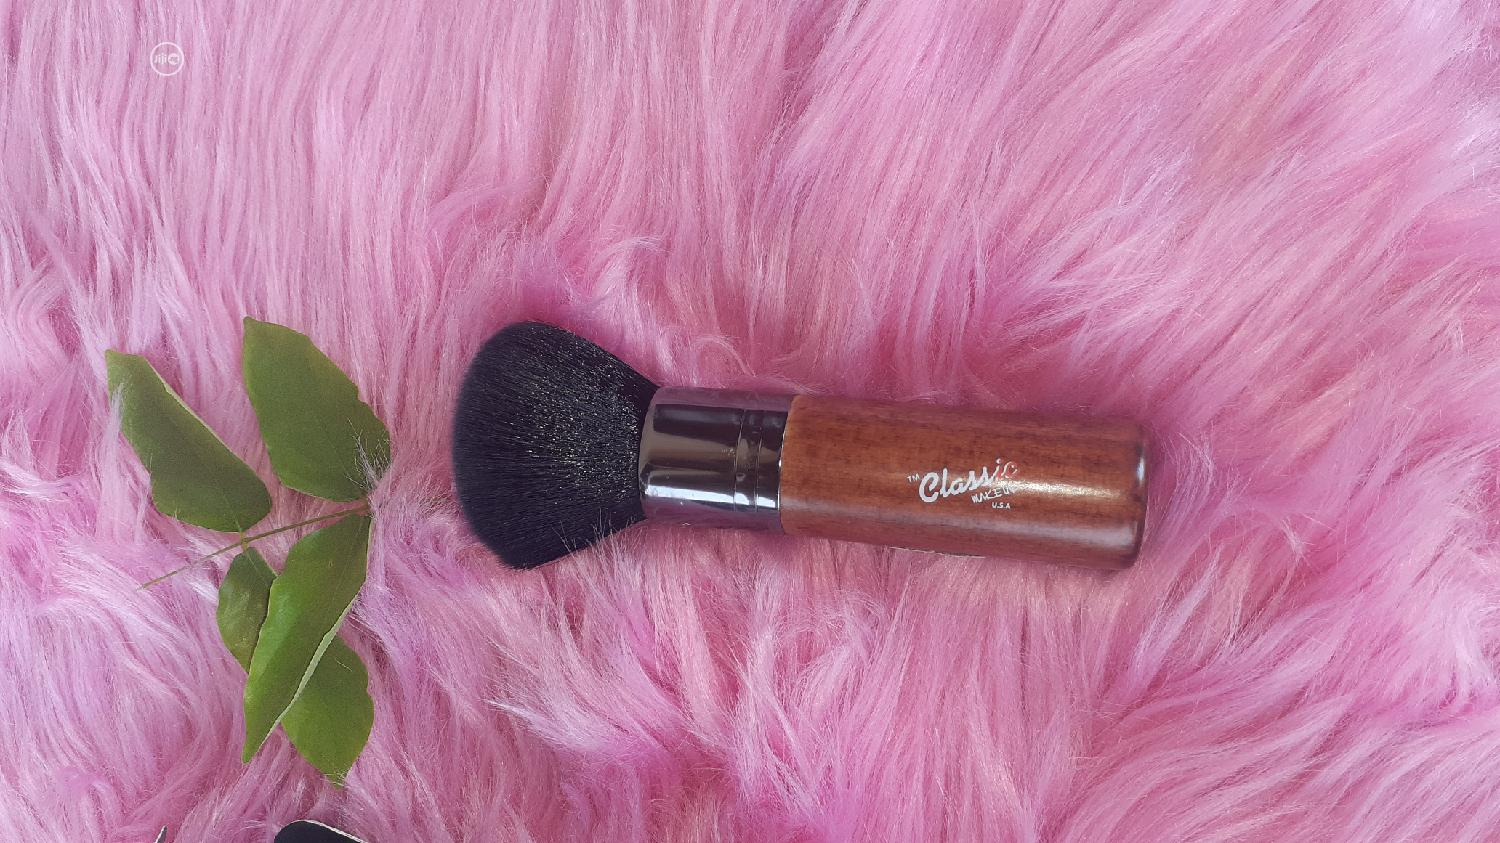 Archive: Classic Make Up USA Deluxe Powder Brush